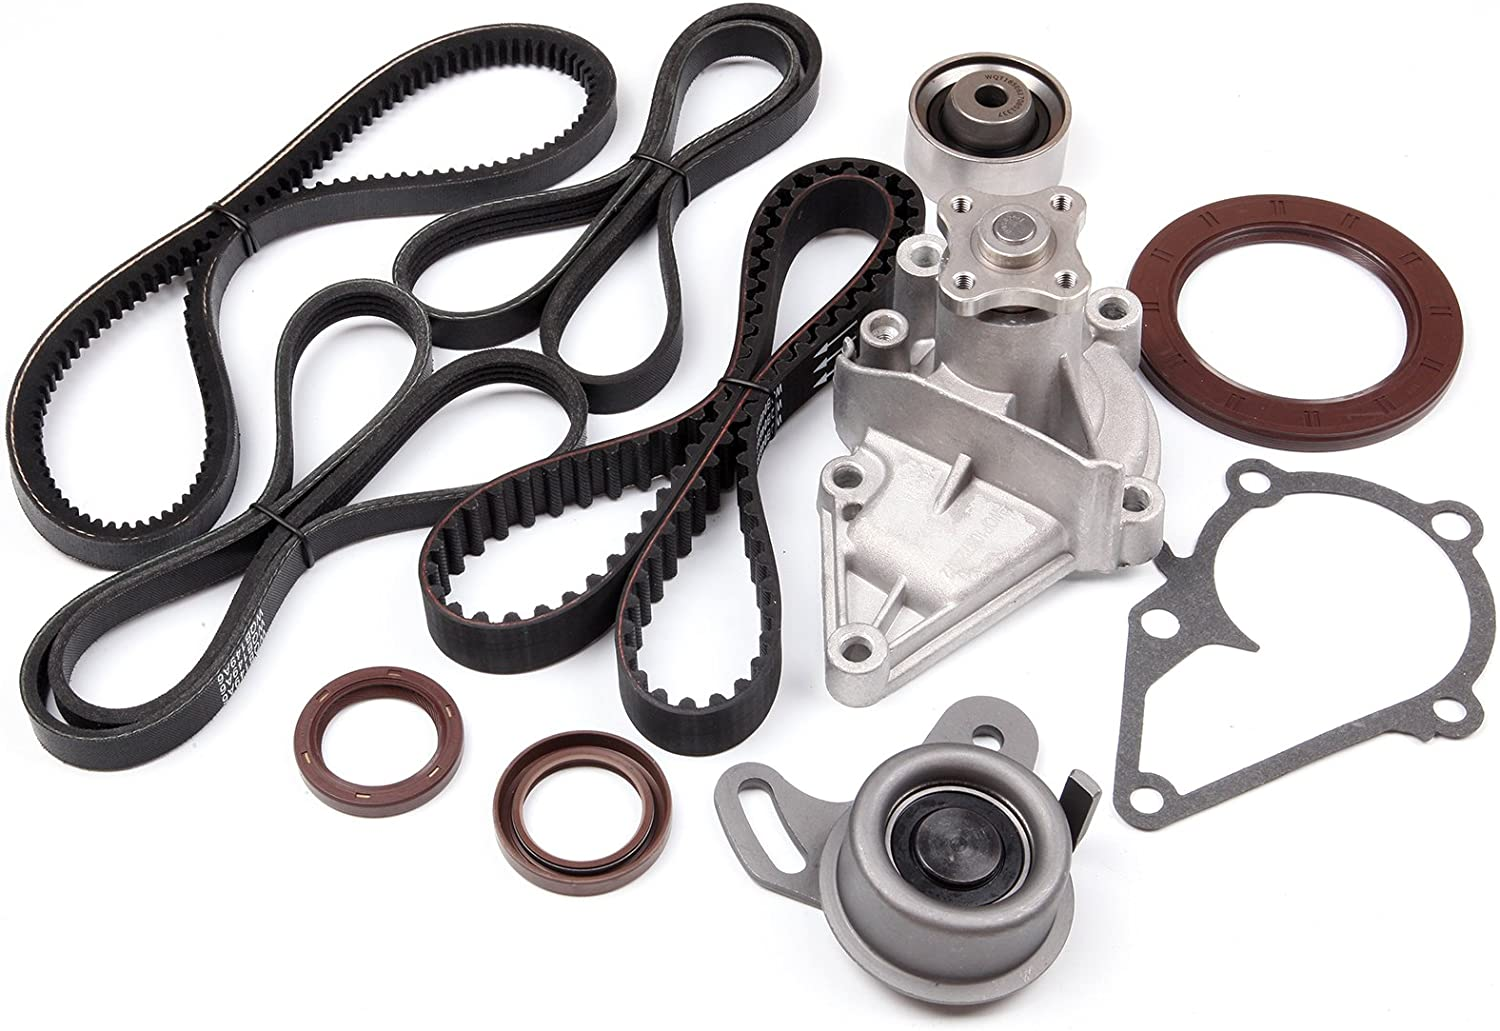 ANPART Timing Belt Kit Max 65% OFF Fit For Accent B 2001-2011 Max 65% OFF Hyundai